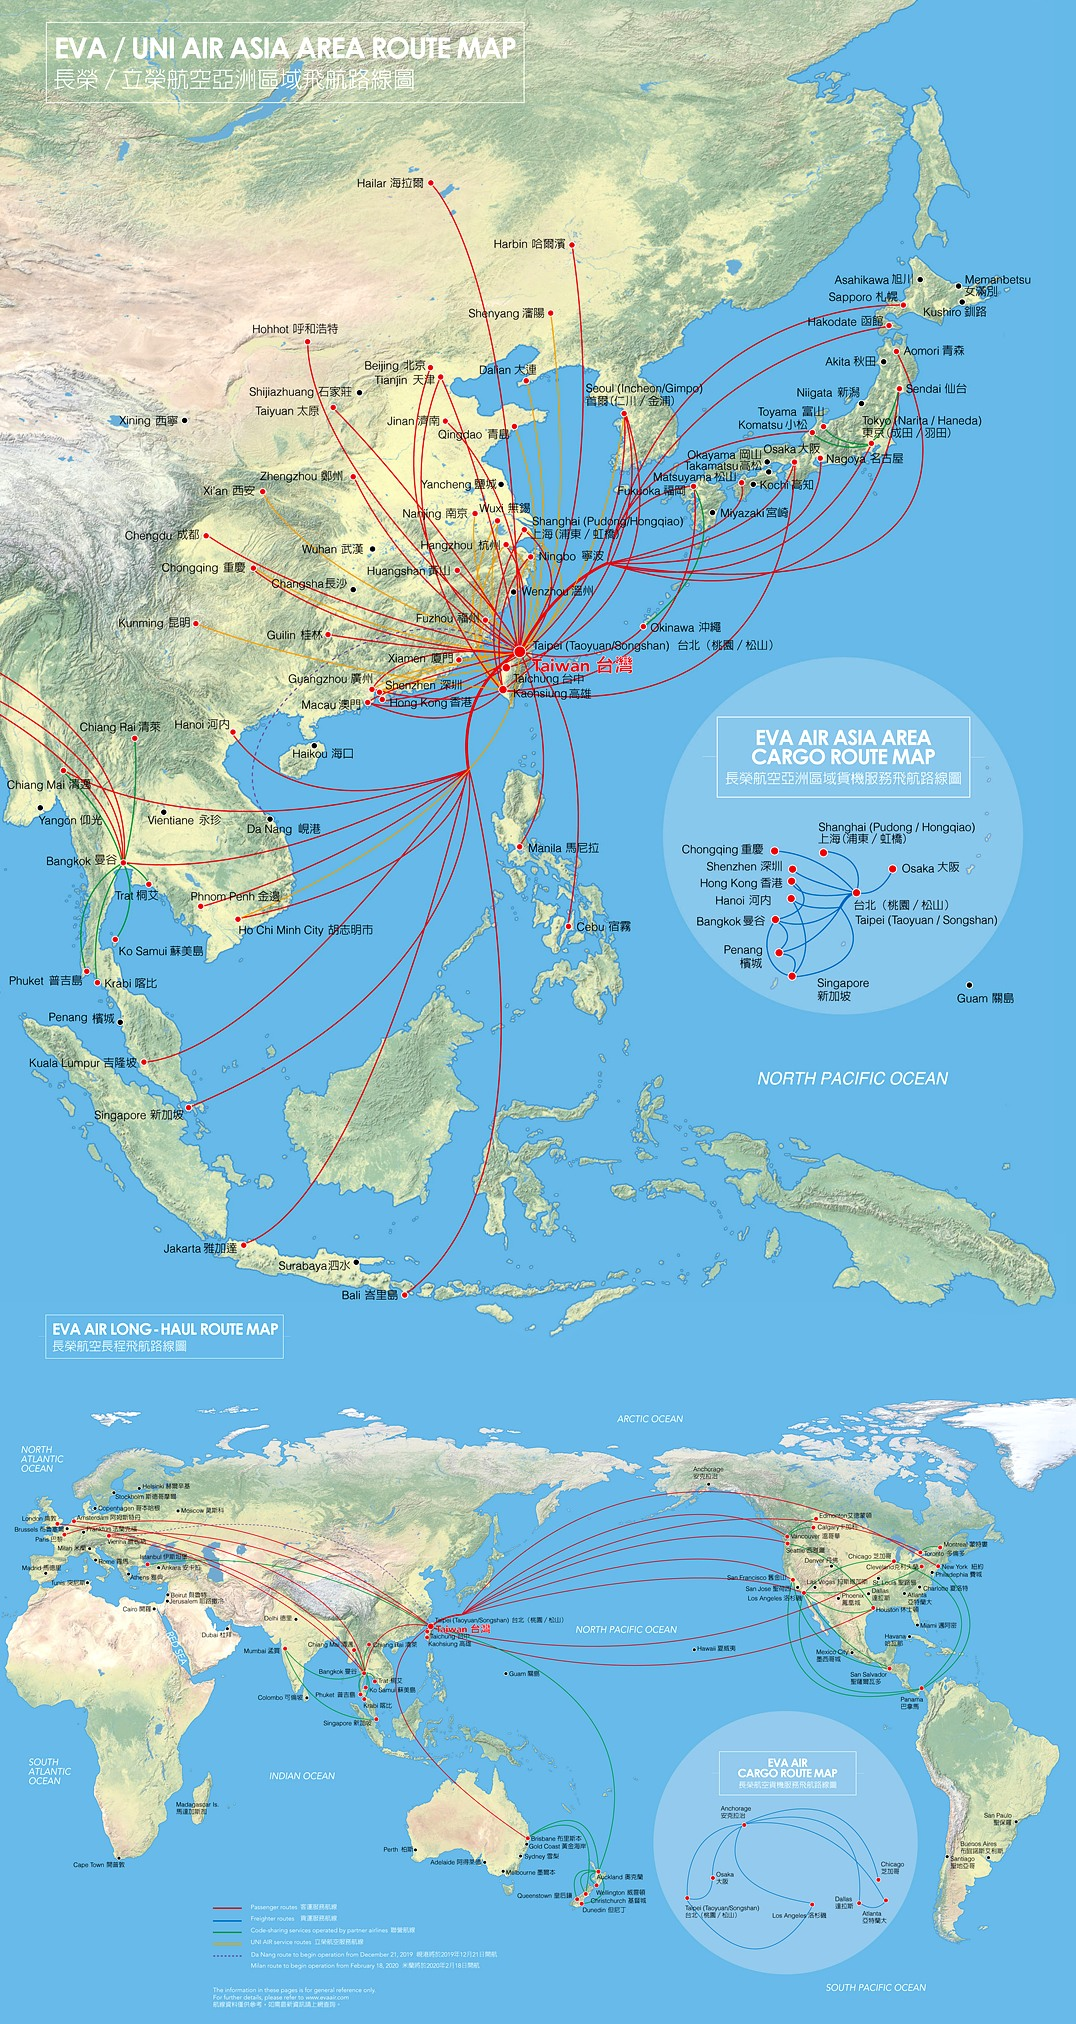 Route Maps - EVA Air | America on west indies world map, north central west, north central region usa map, india south asia map, north east south west us map, north hill stations india, south india state map, north east south west wind, south west monsoon current map, north east south west travel, south west native american tribes map, north goa map, north east south west geography, west indies on map, west india docks london map, north compass star clip art, north east india tour, north indian, east china sea asia map,